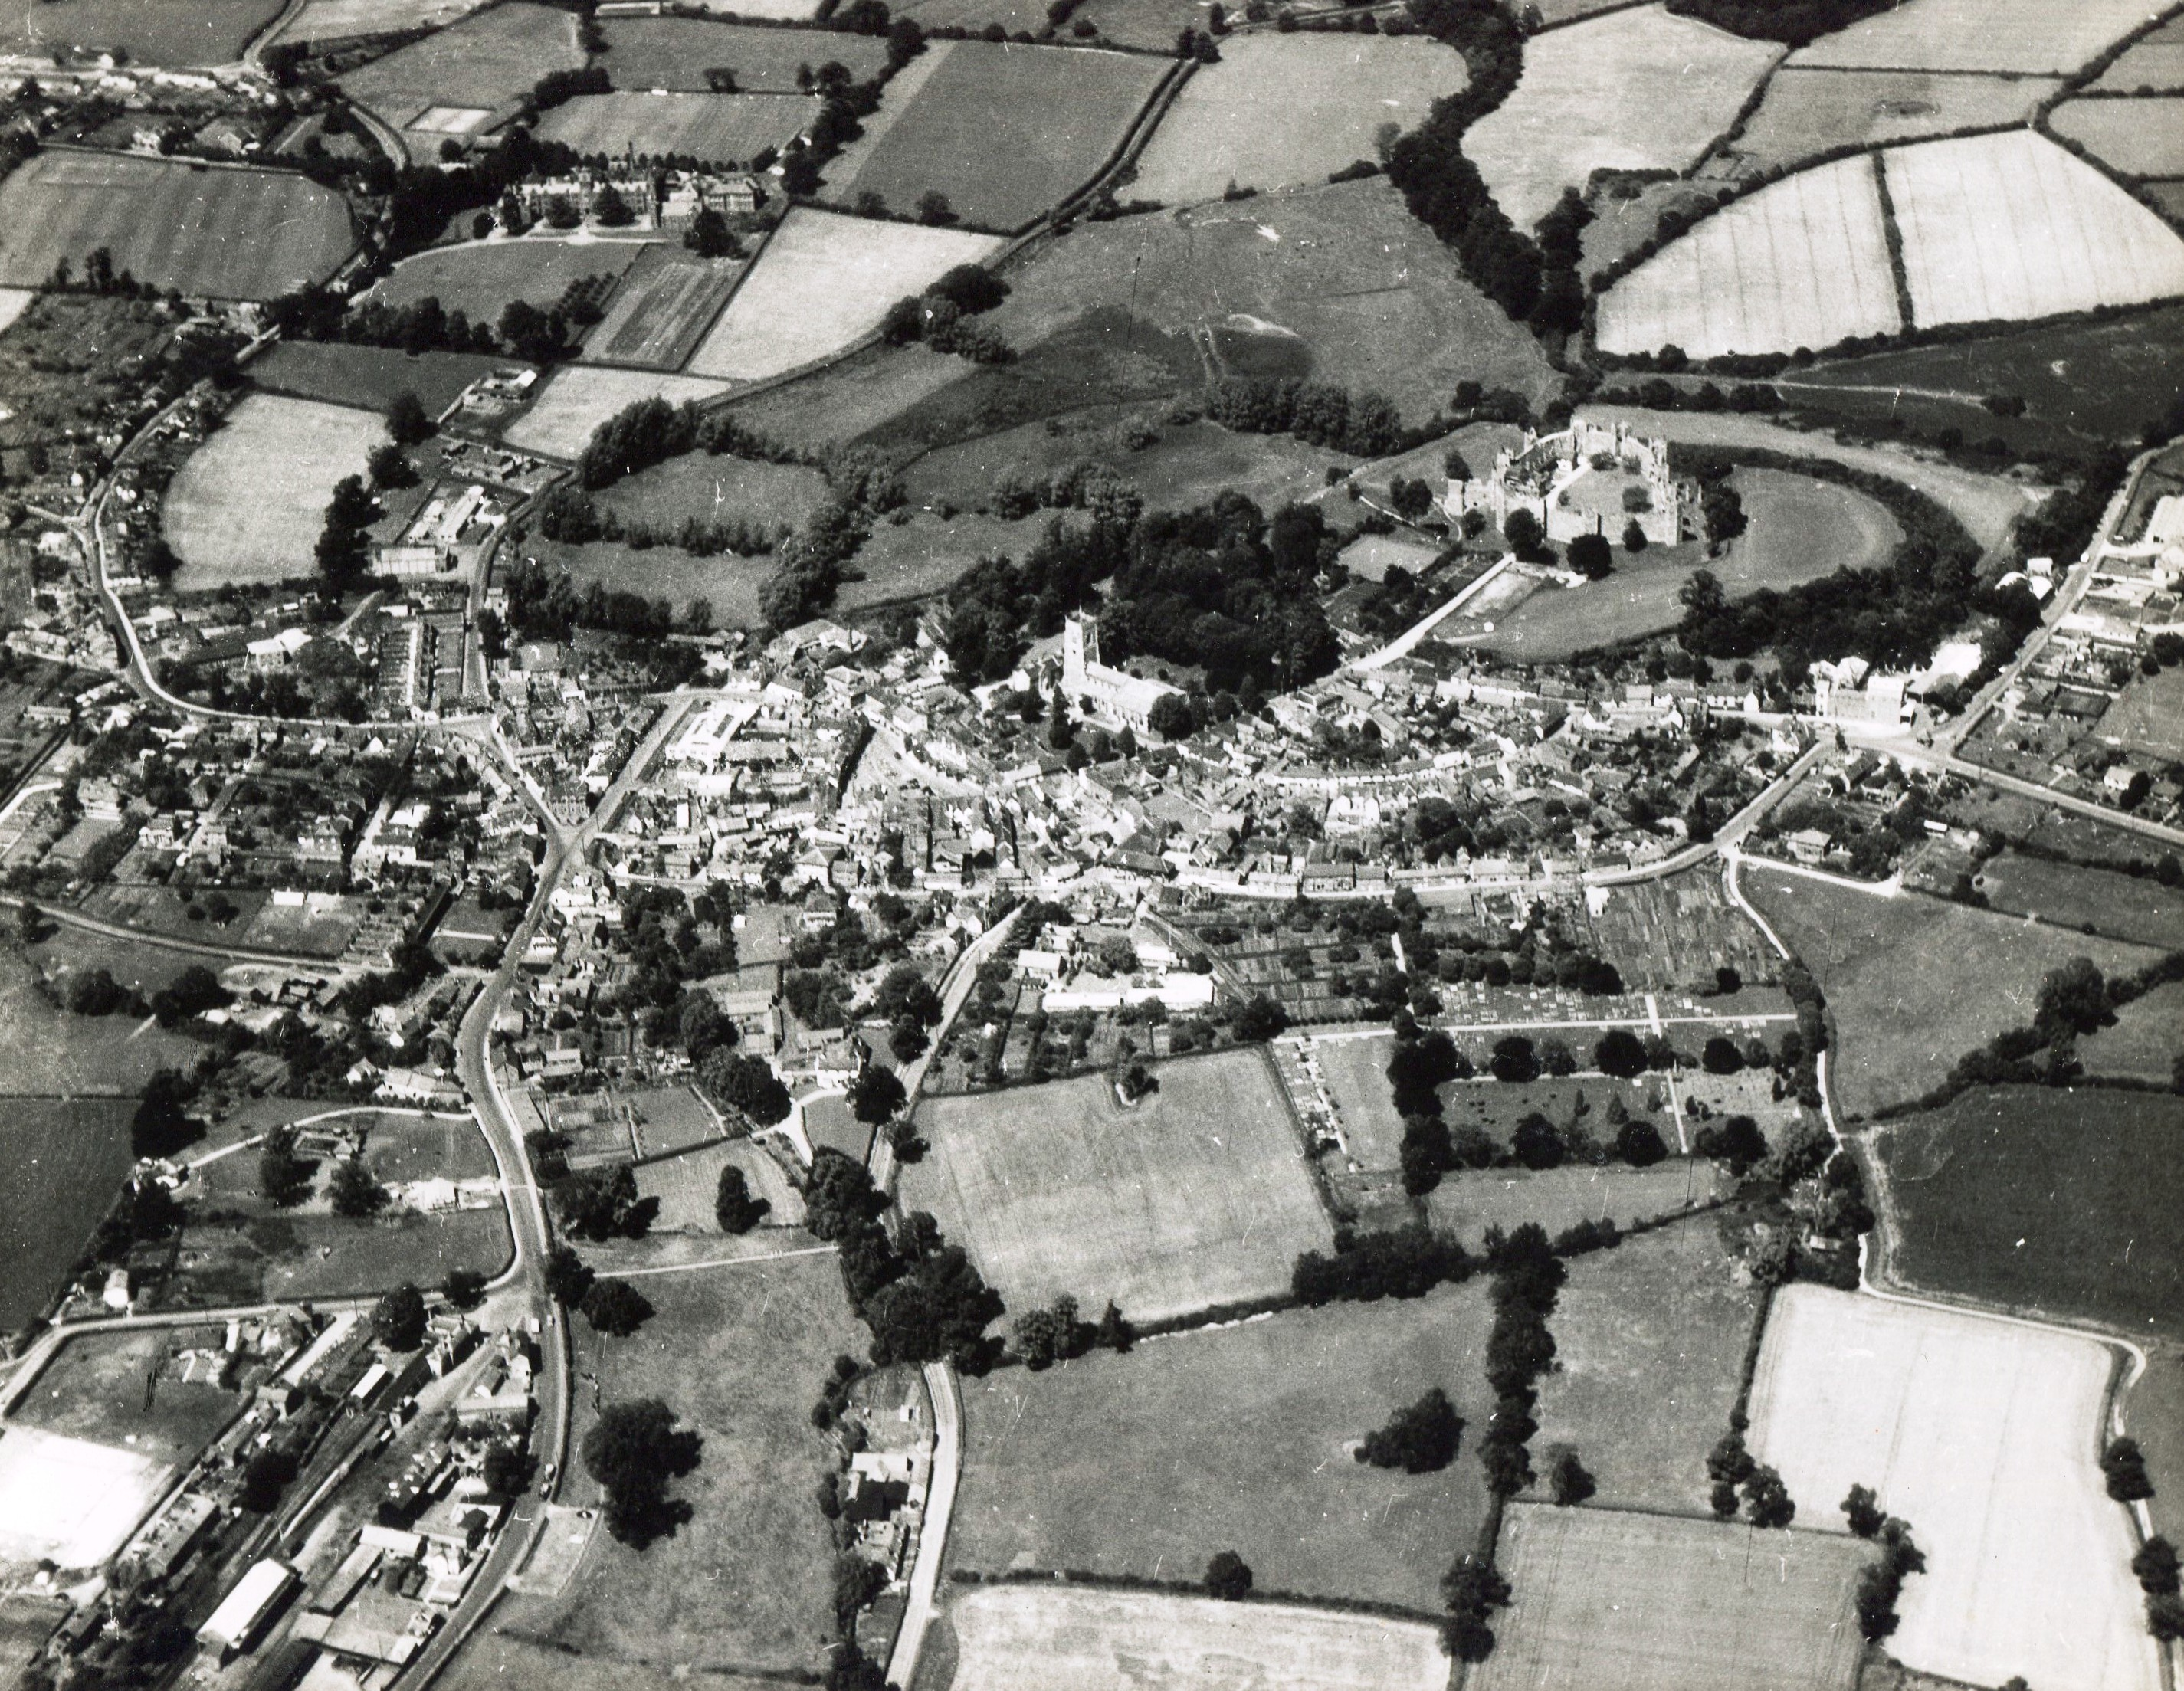 Town view, possibly late 1950s